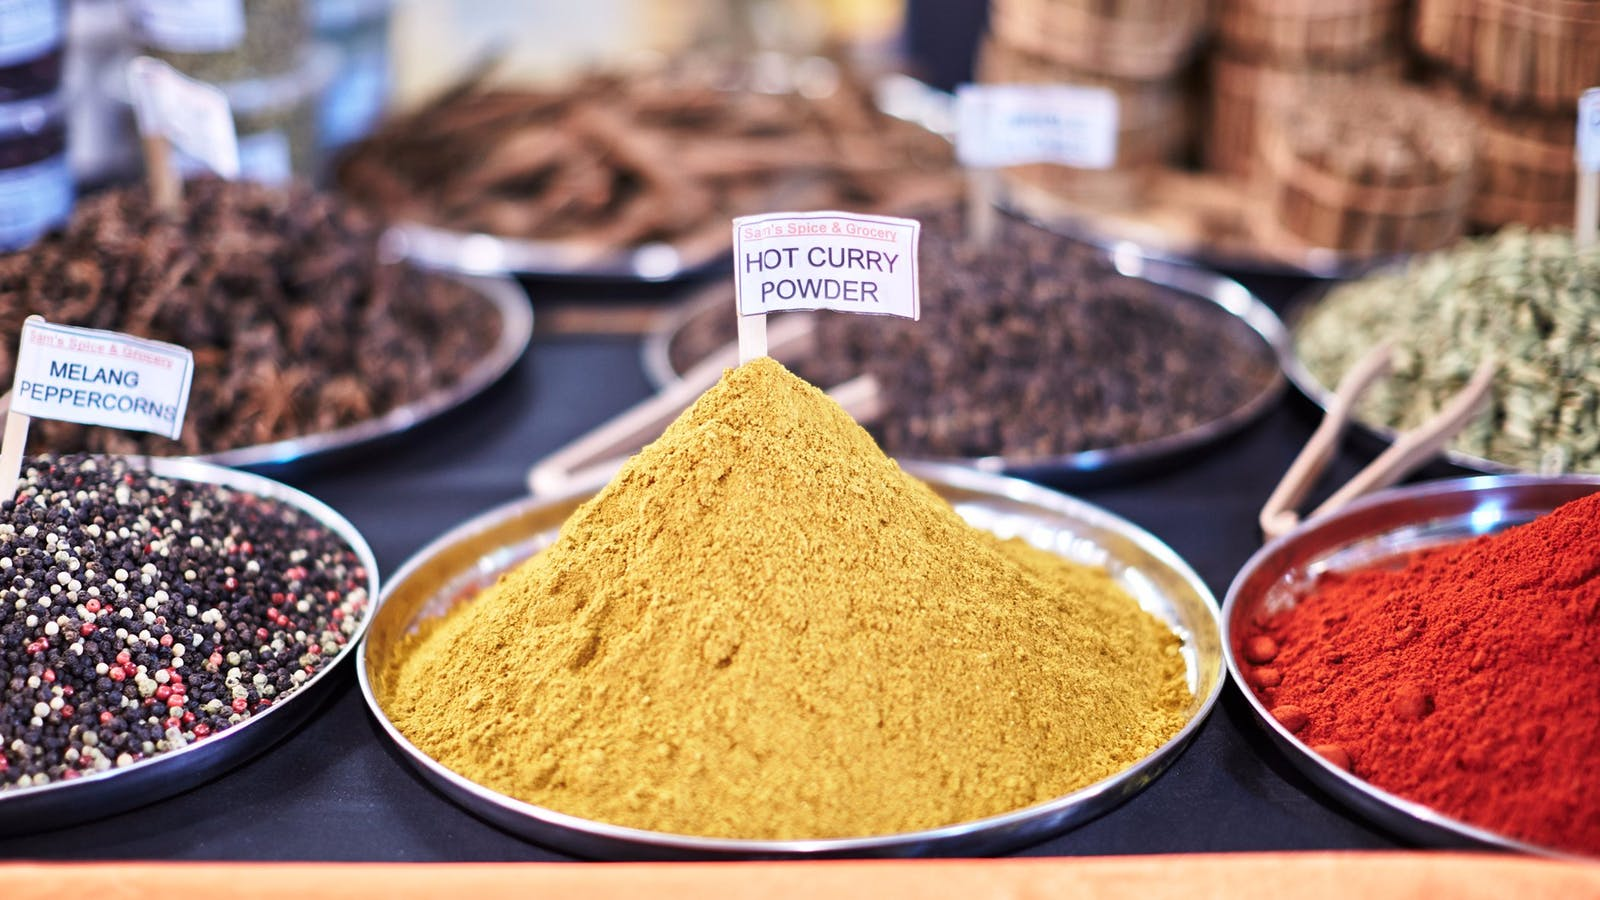 Delicious spices from Sam's Spice & Grocery